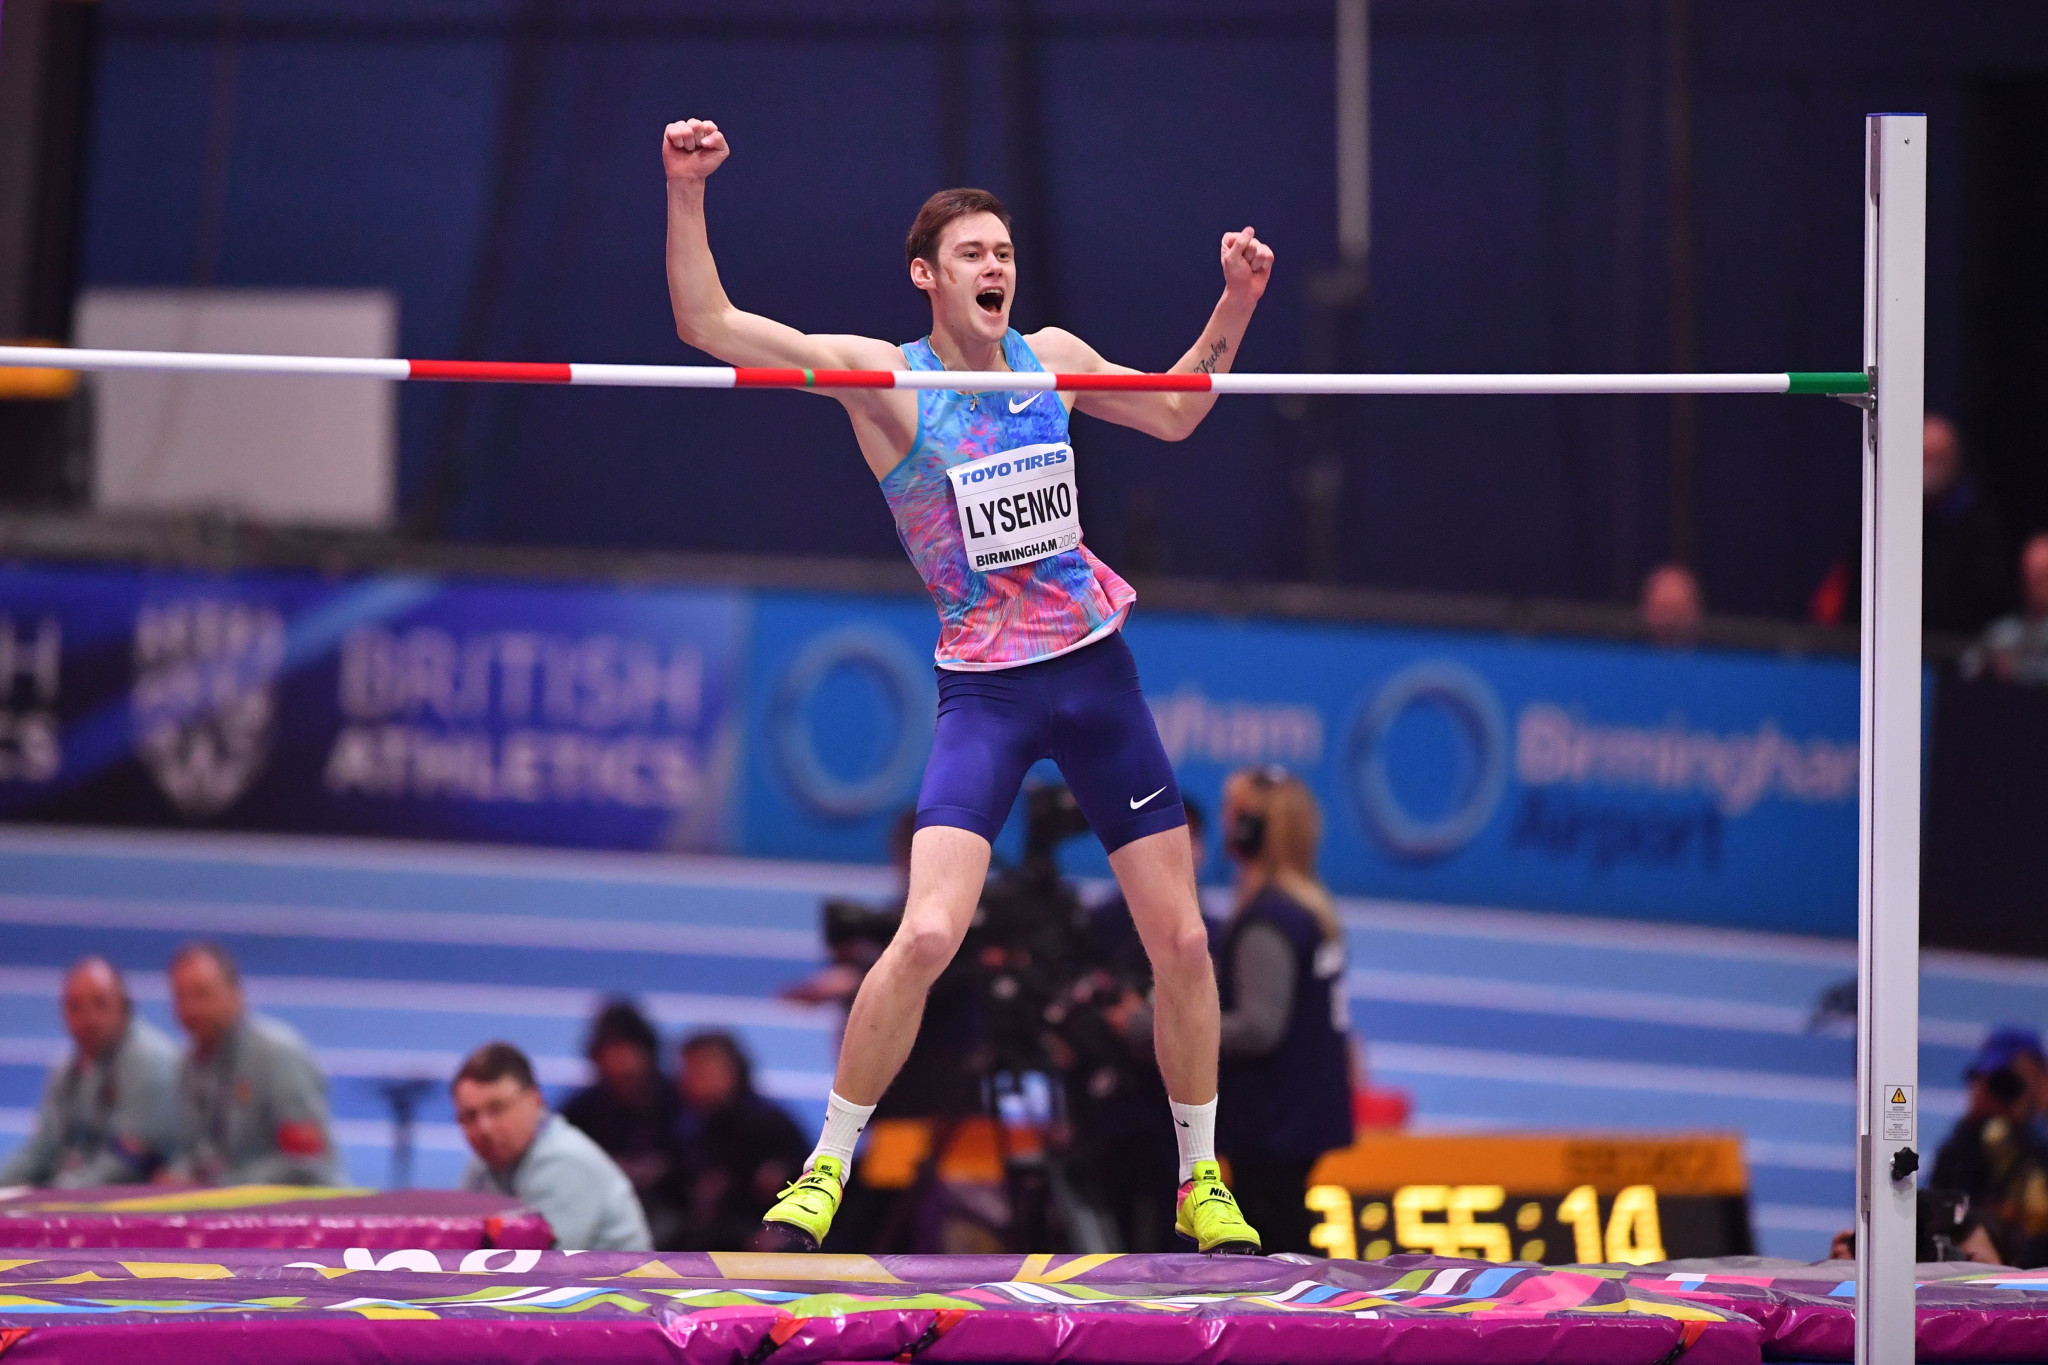 RusAF is currently suspended after a number of officials were charged with falsifying whereabouts information related to high jumper Danil Lysenko ©Getty Images